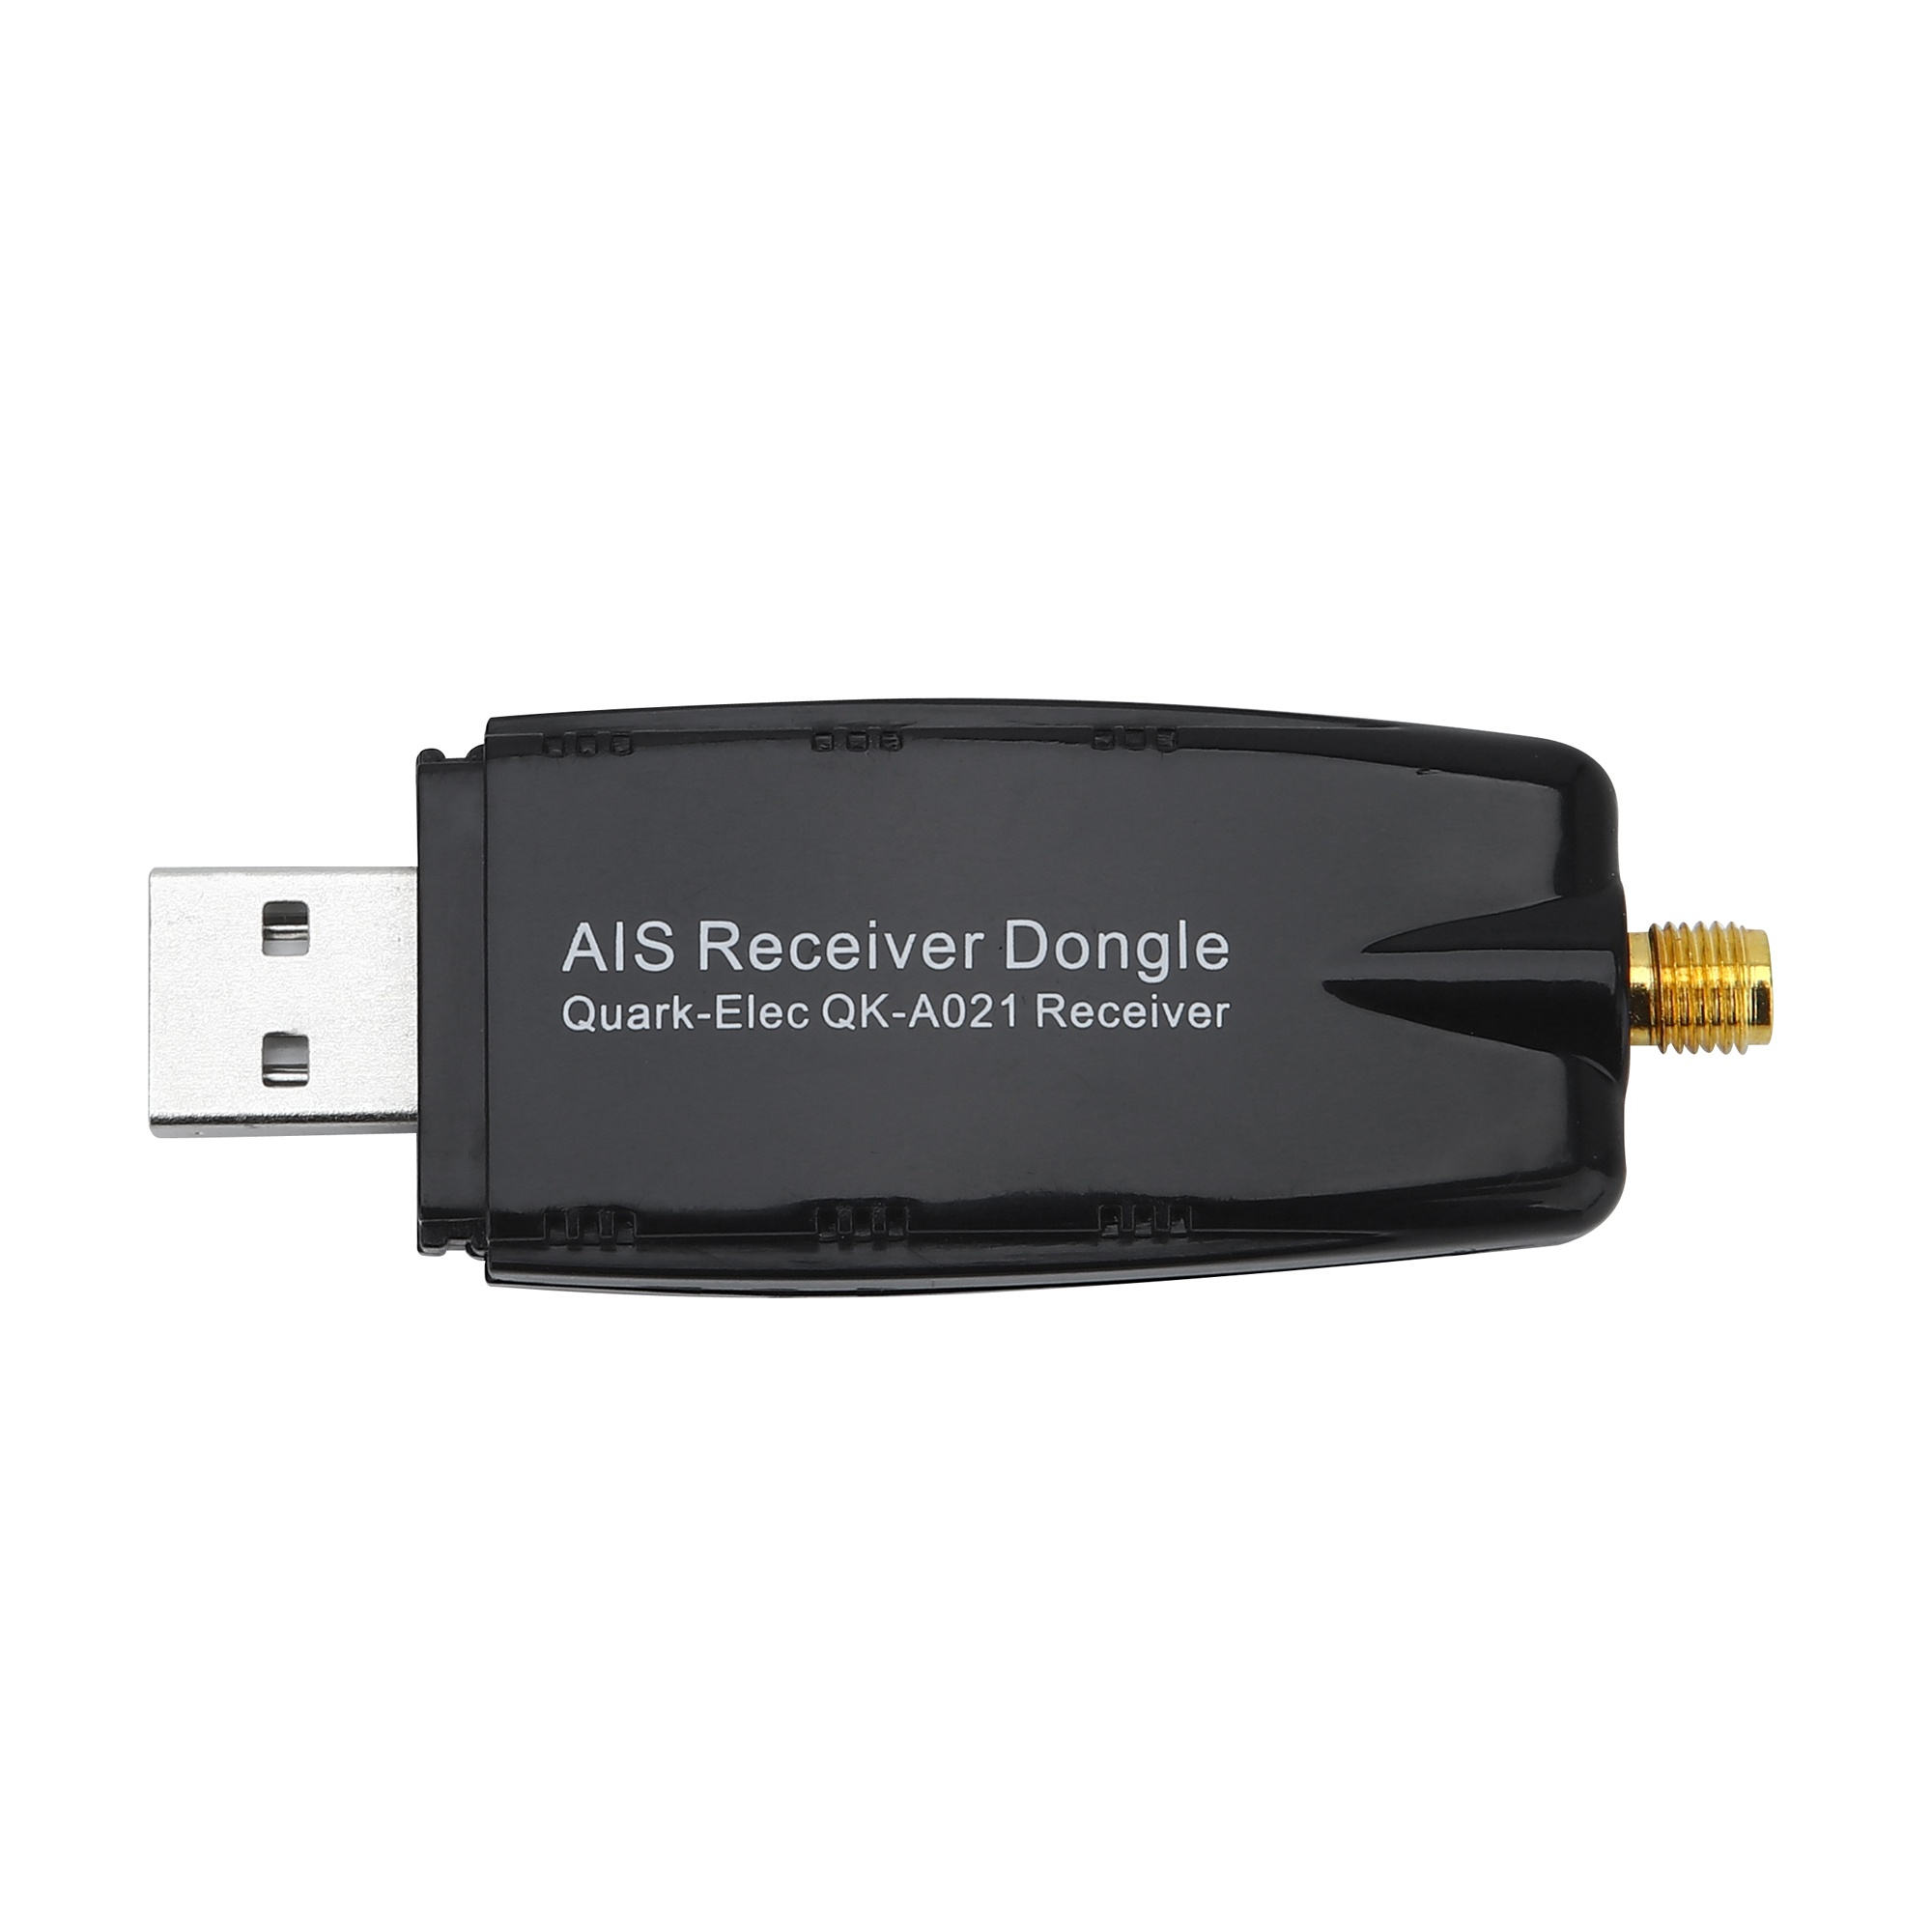 AIS Receiver Dongle